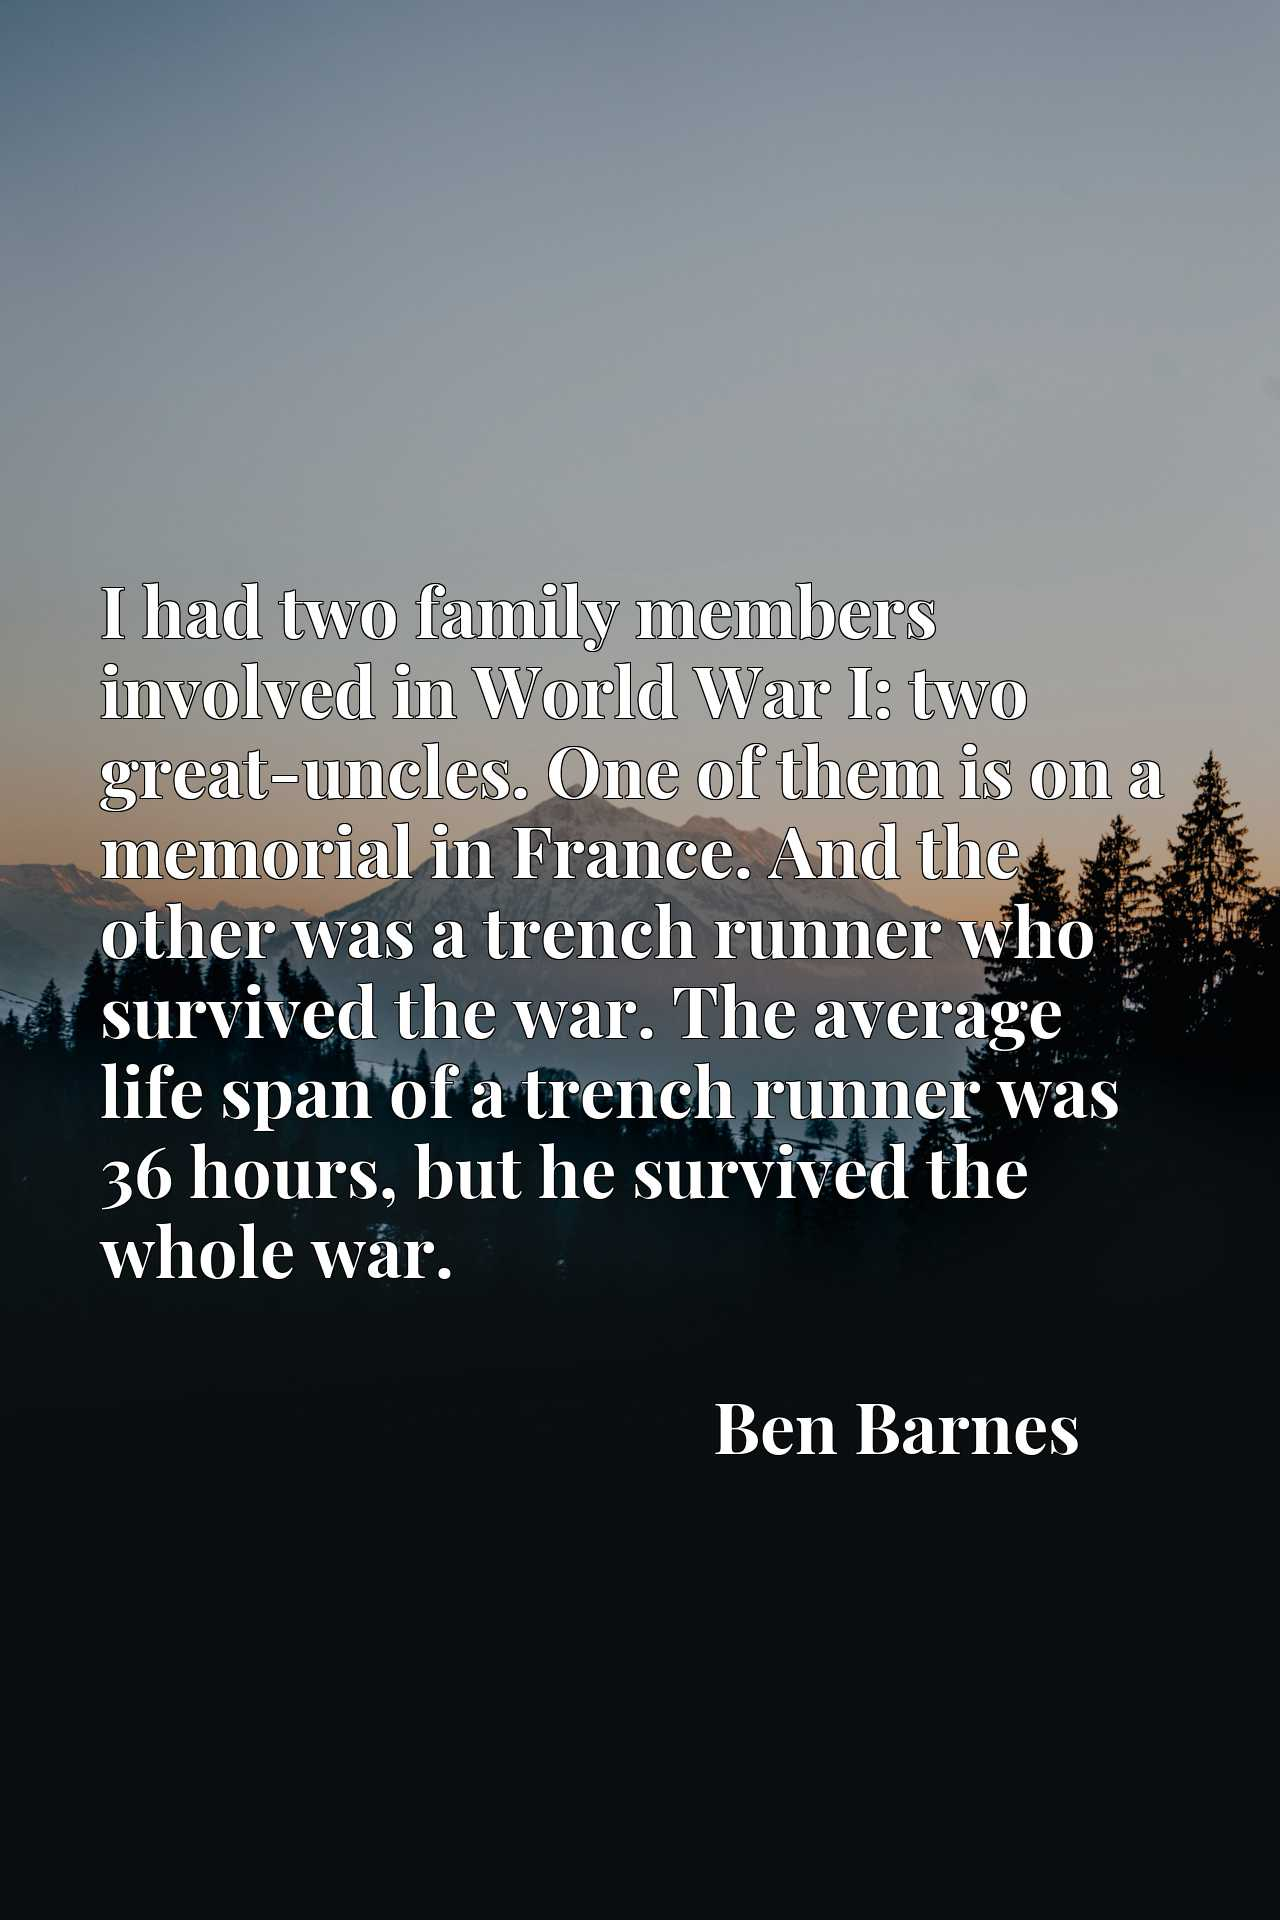 I had two family members involved in World War I: two great-uncles. One of them is on a memorial in France. And the other was a trench runner who survived the war. The average life span of a trench runner was 36 hours, but he survived the whole war.